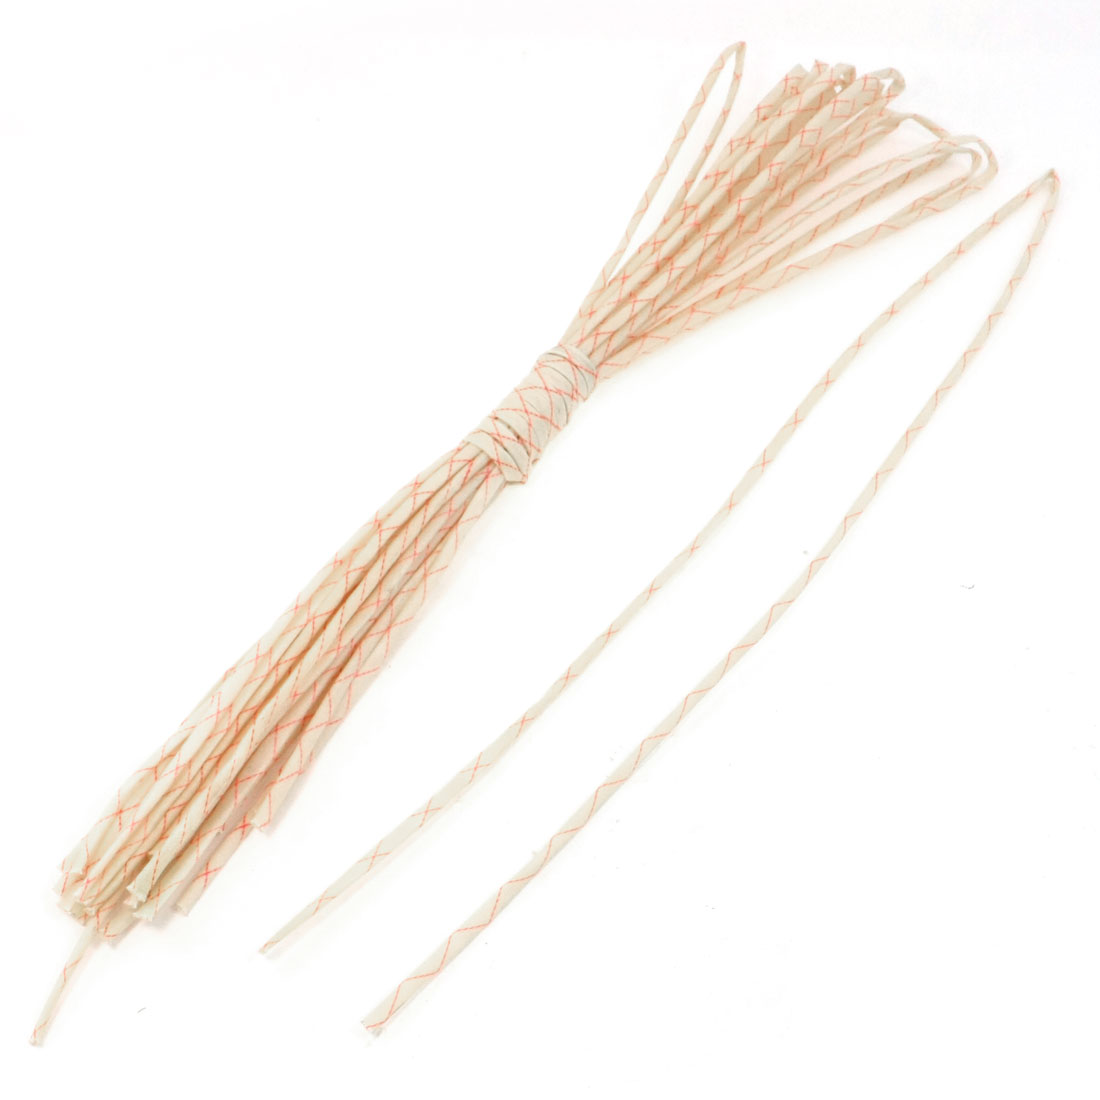 15pcs 3mm x 92cm Fiberglass Insulating Sleevings for Electrical Wire